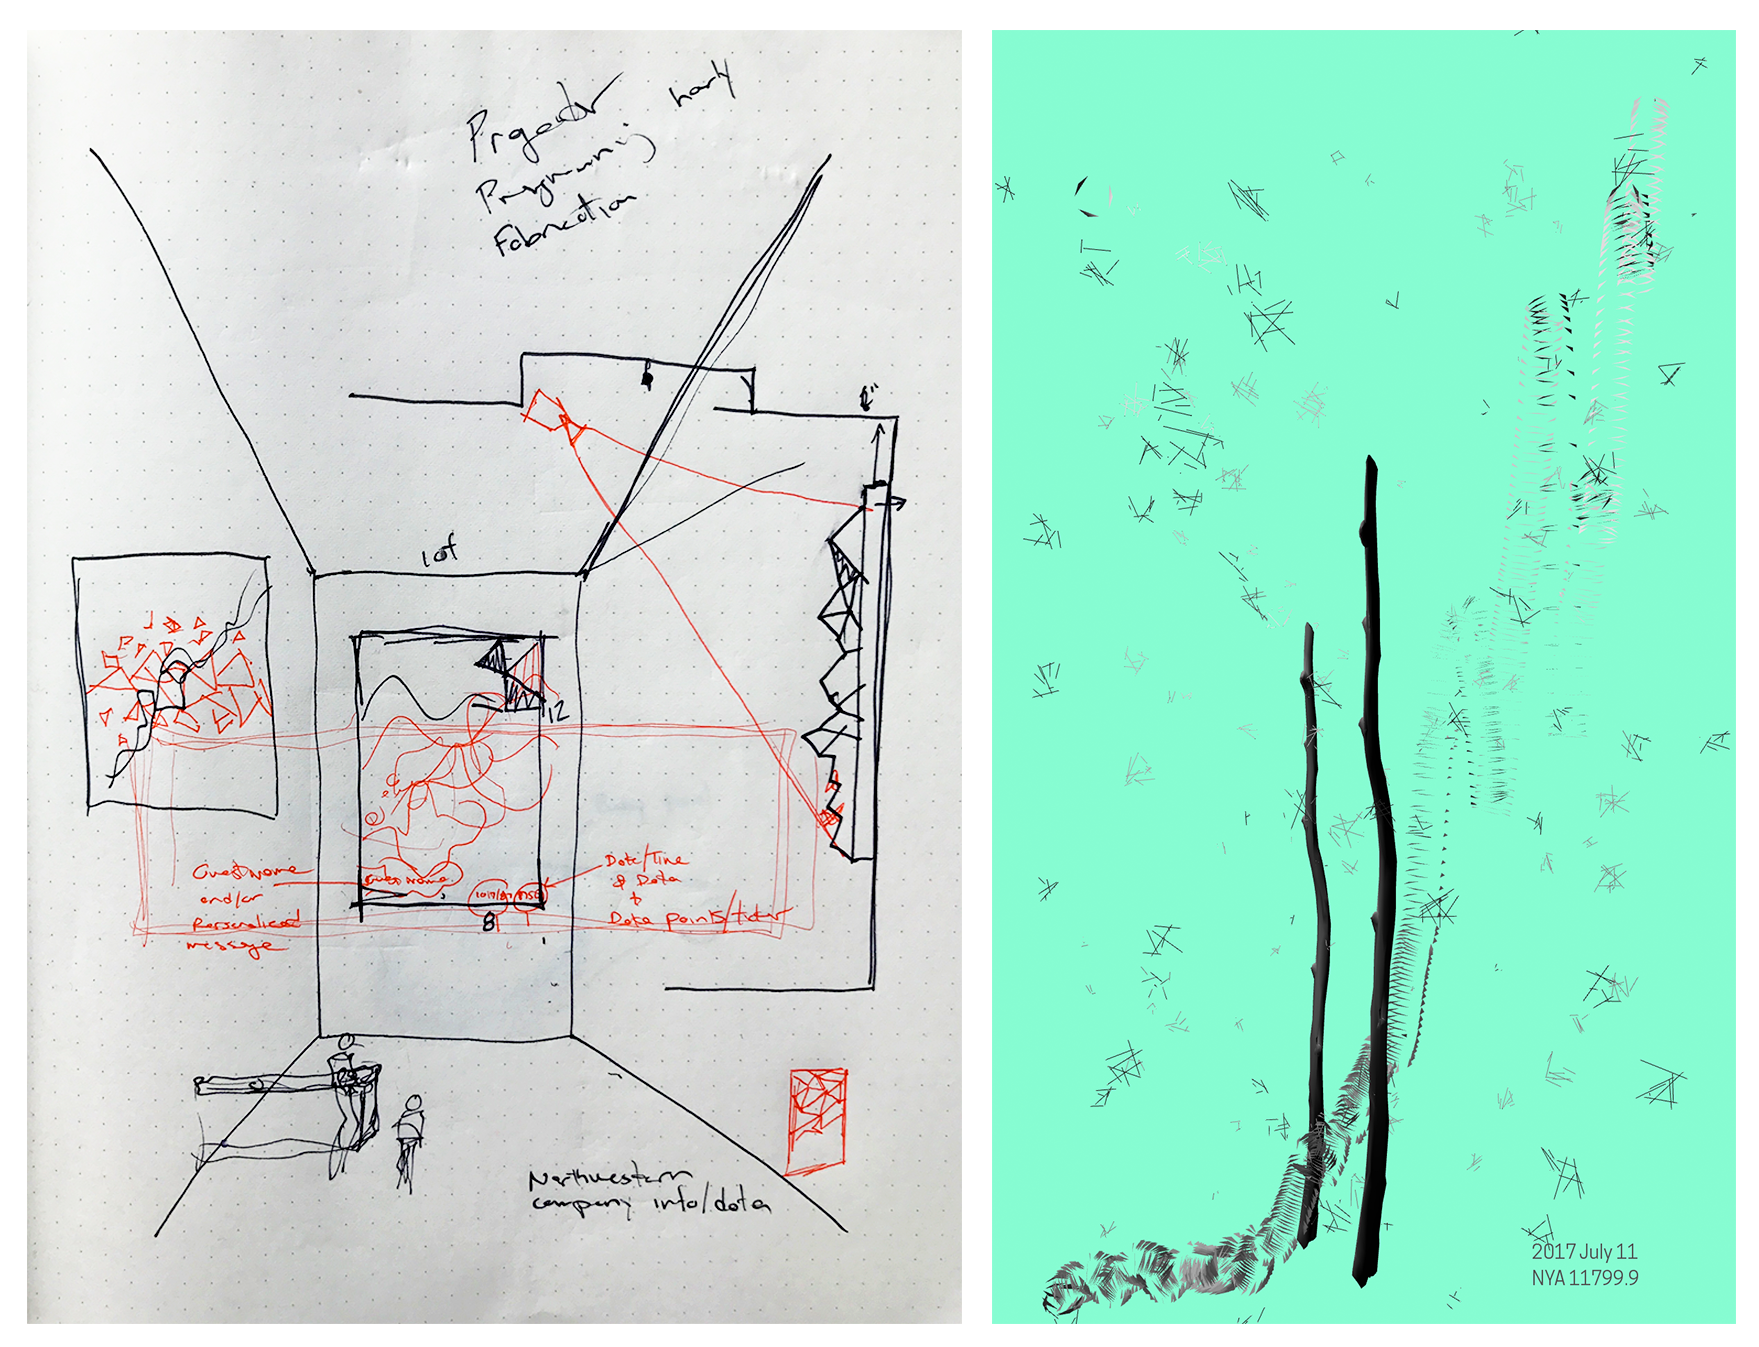 Early paper and software sketches.